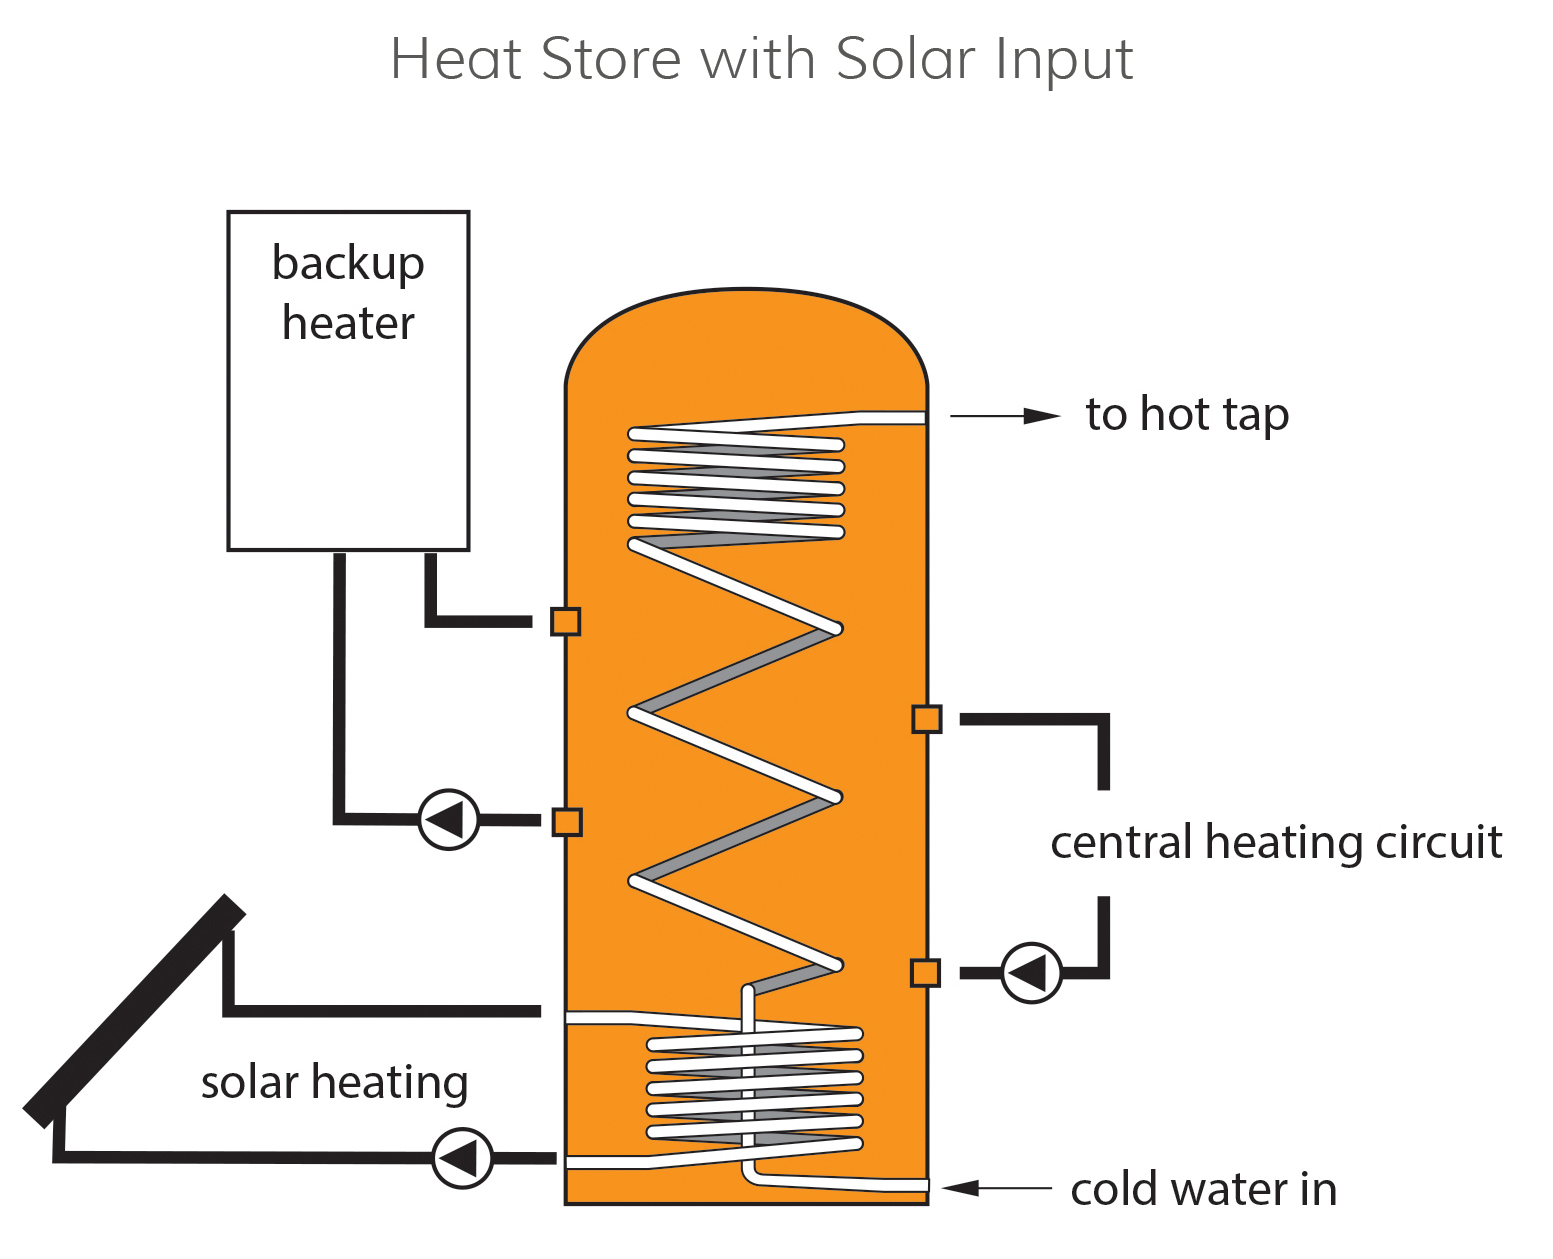 schematic showing how a heat store